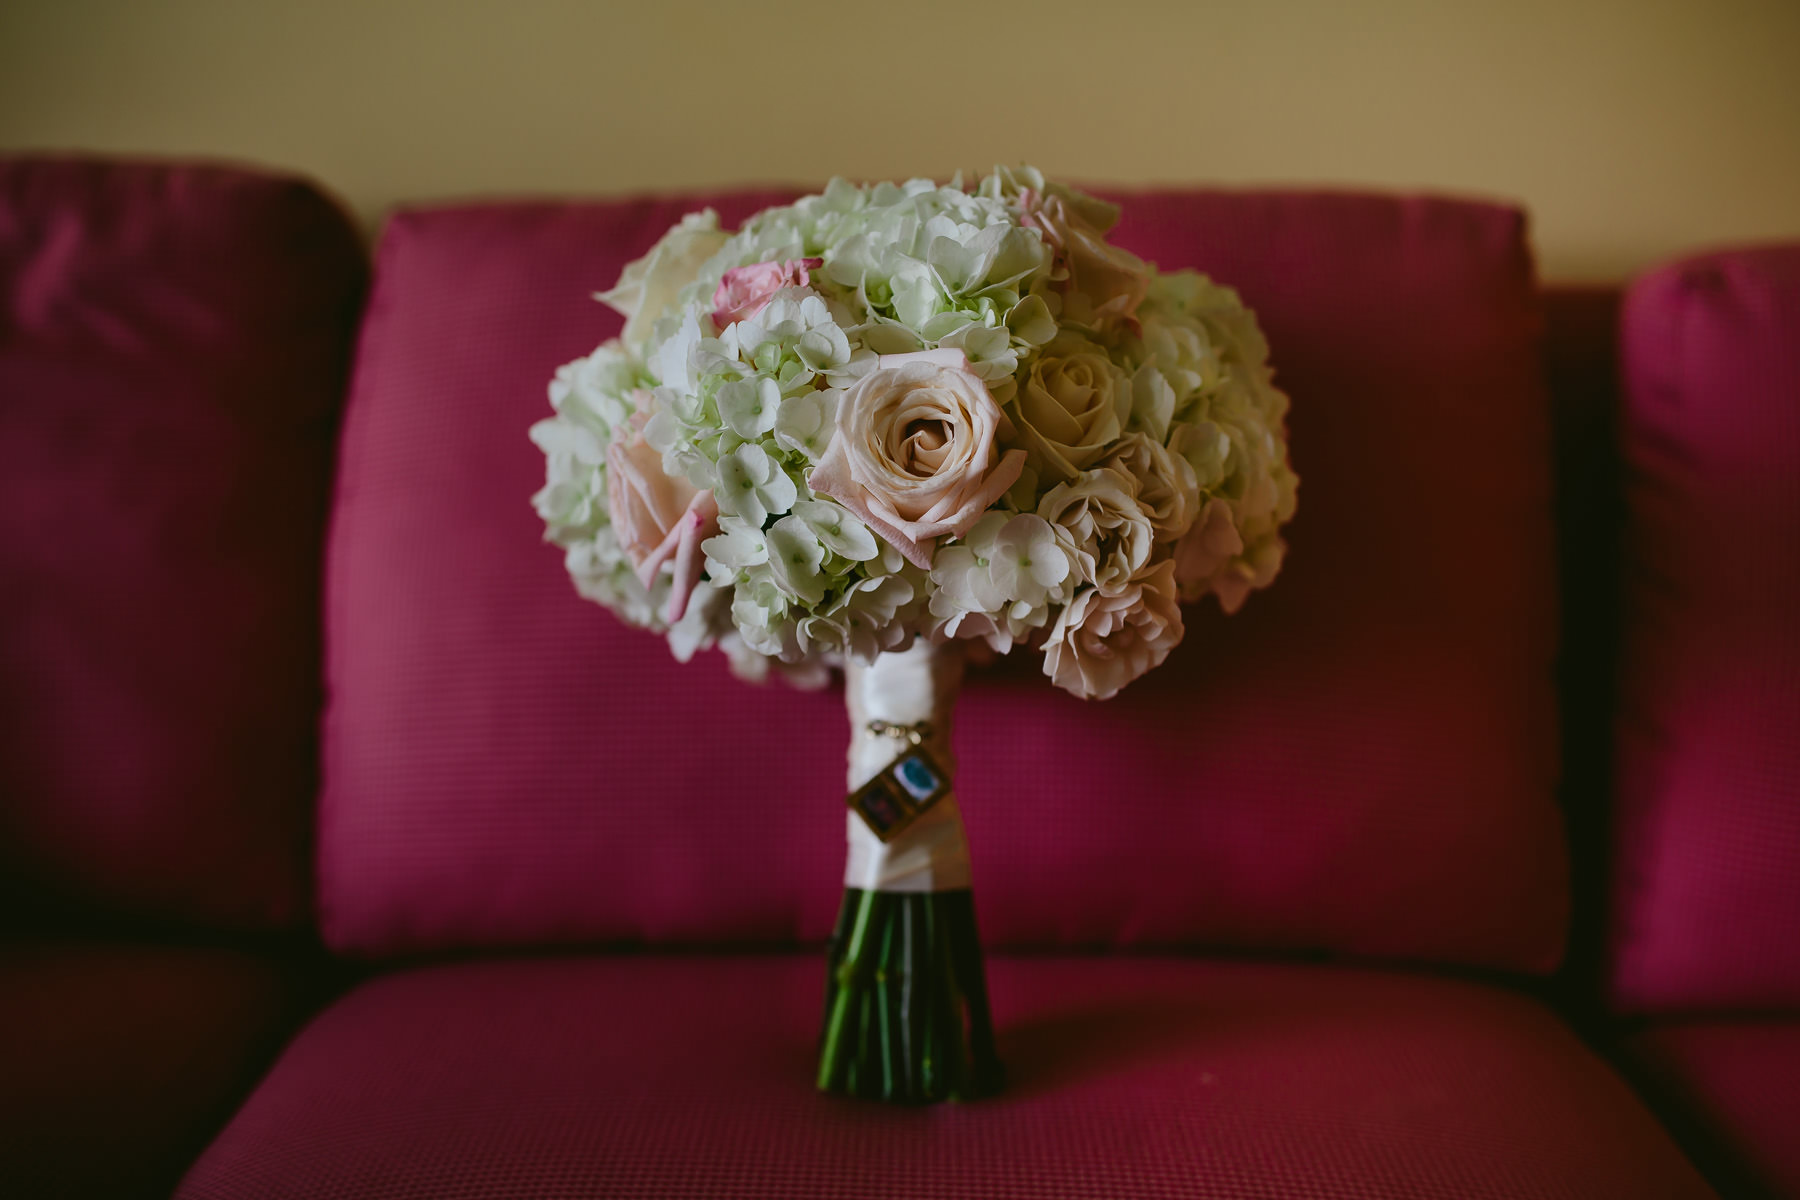 wedding-bouquet-tiny-house-photo-details-florals-bride.jpg